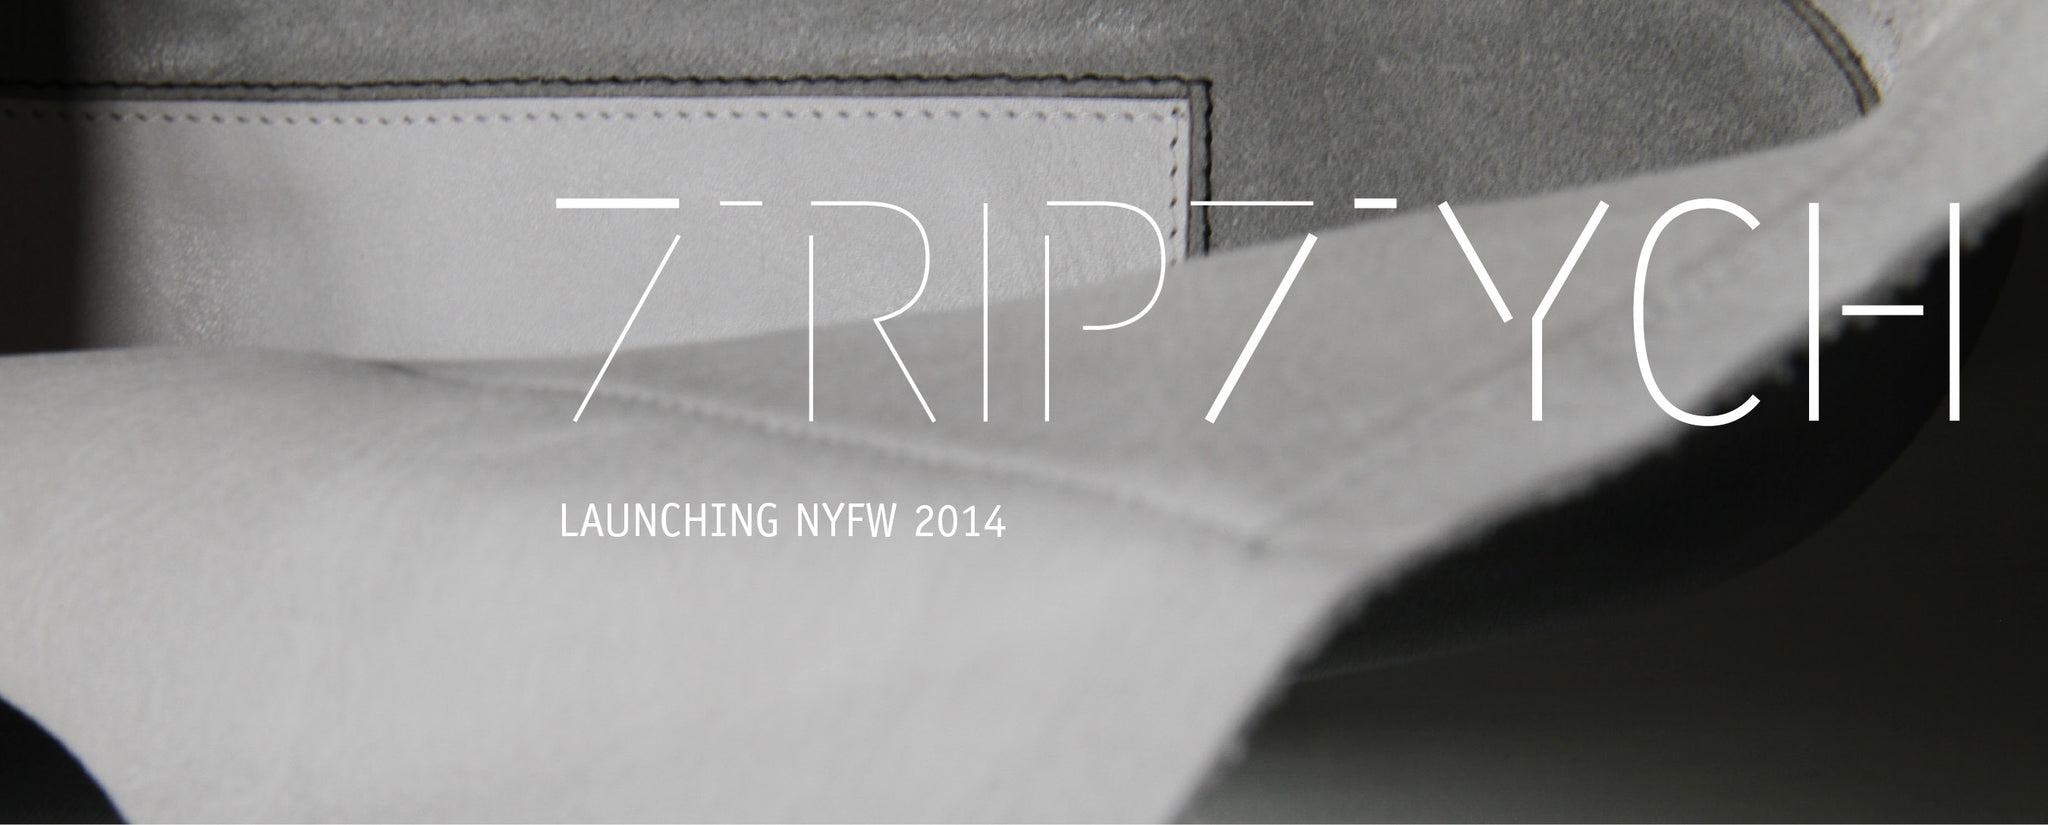 TRIPTYCH brand launch invitation